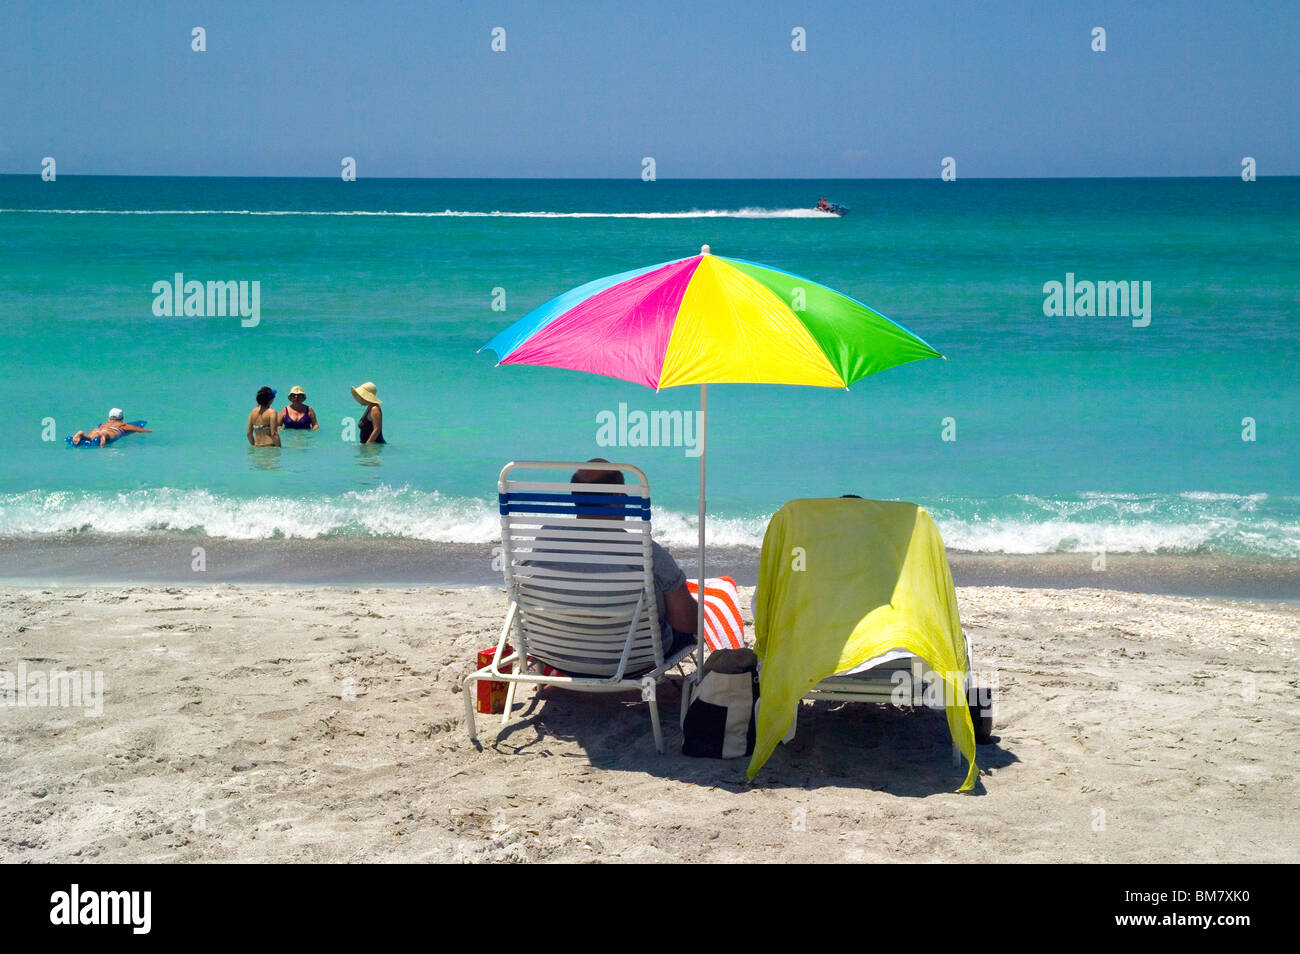 Vacationers on shore watch their friends sunbathe in the warm Gulf of Mexico turquoise waters along the Longboat - Stock Image